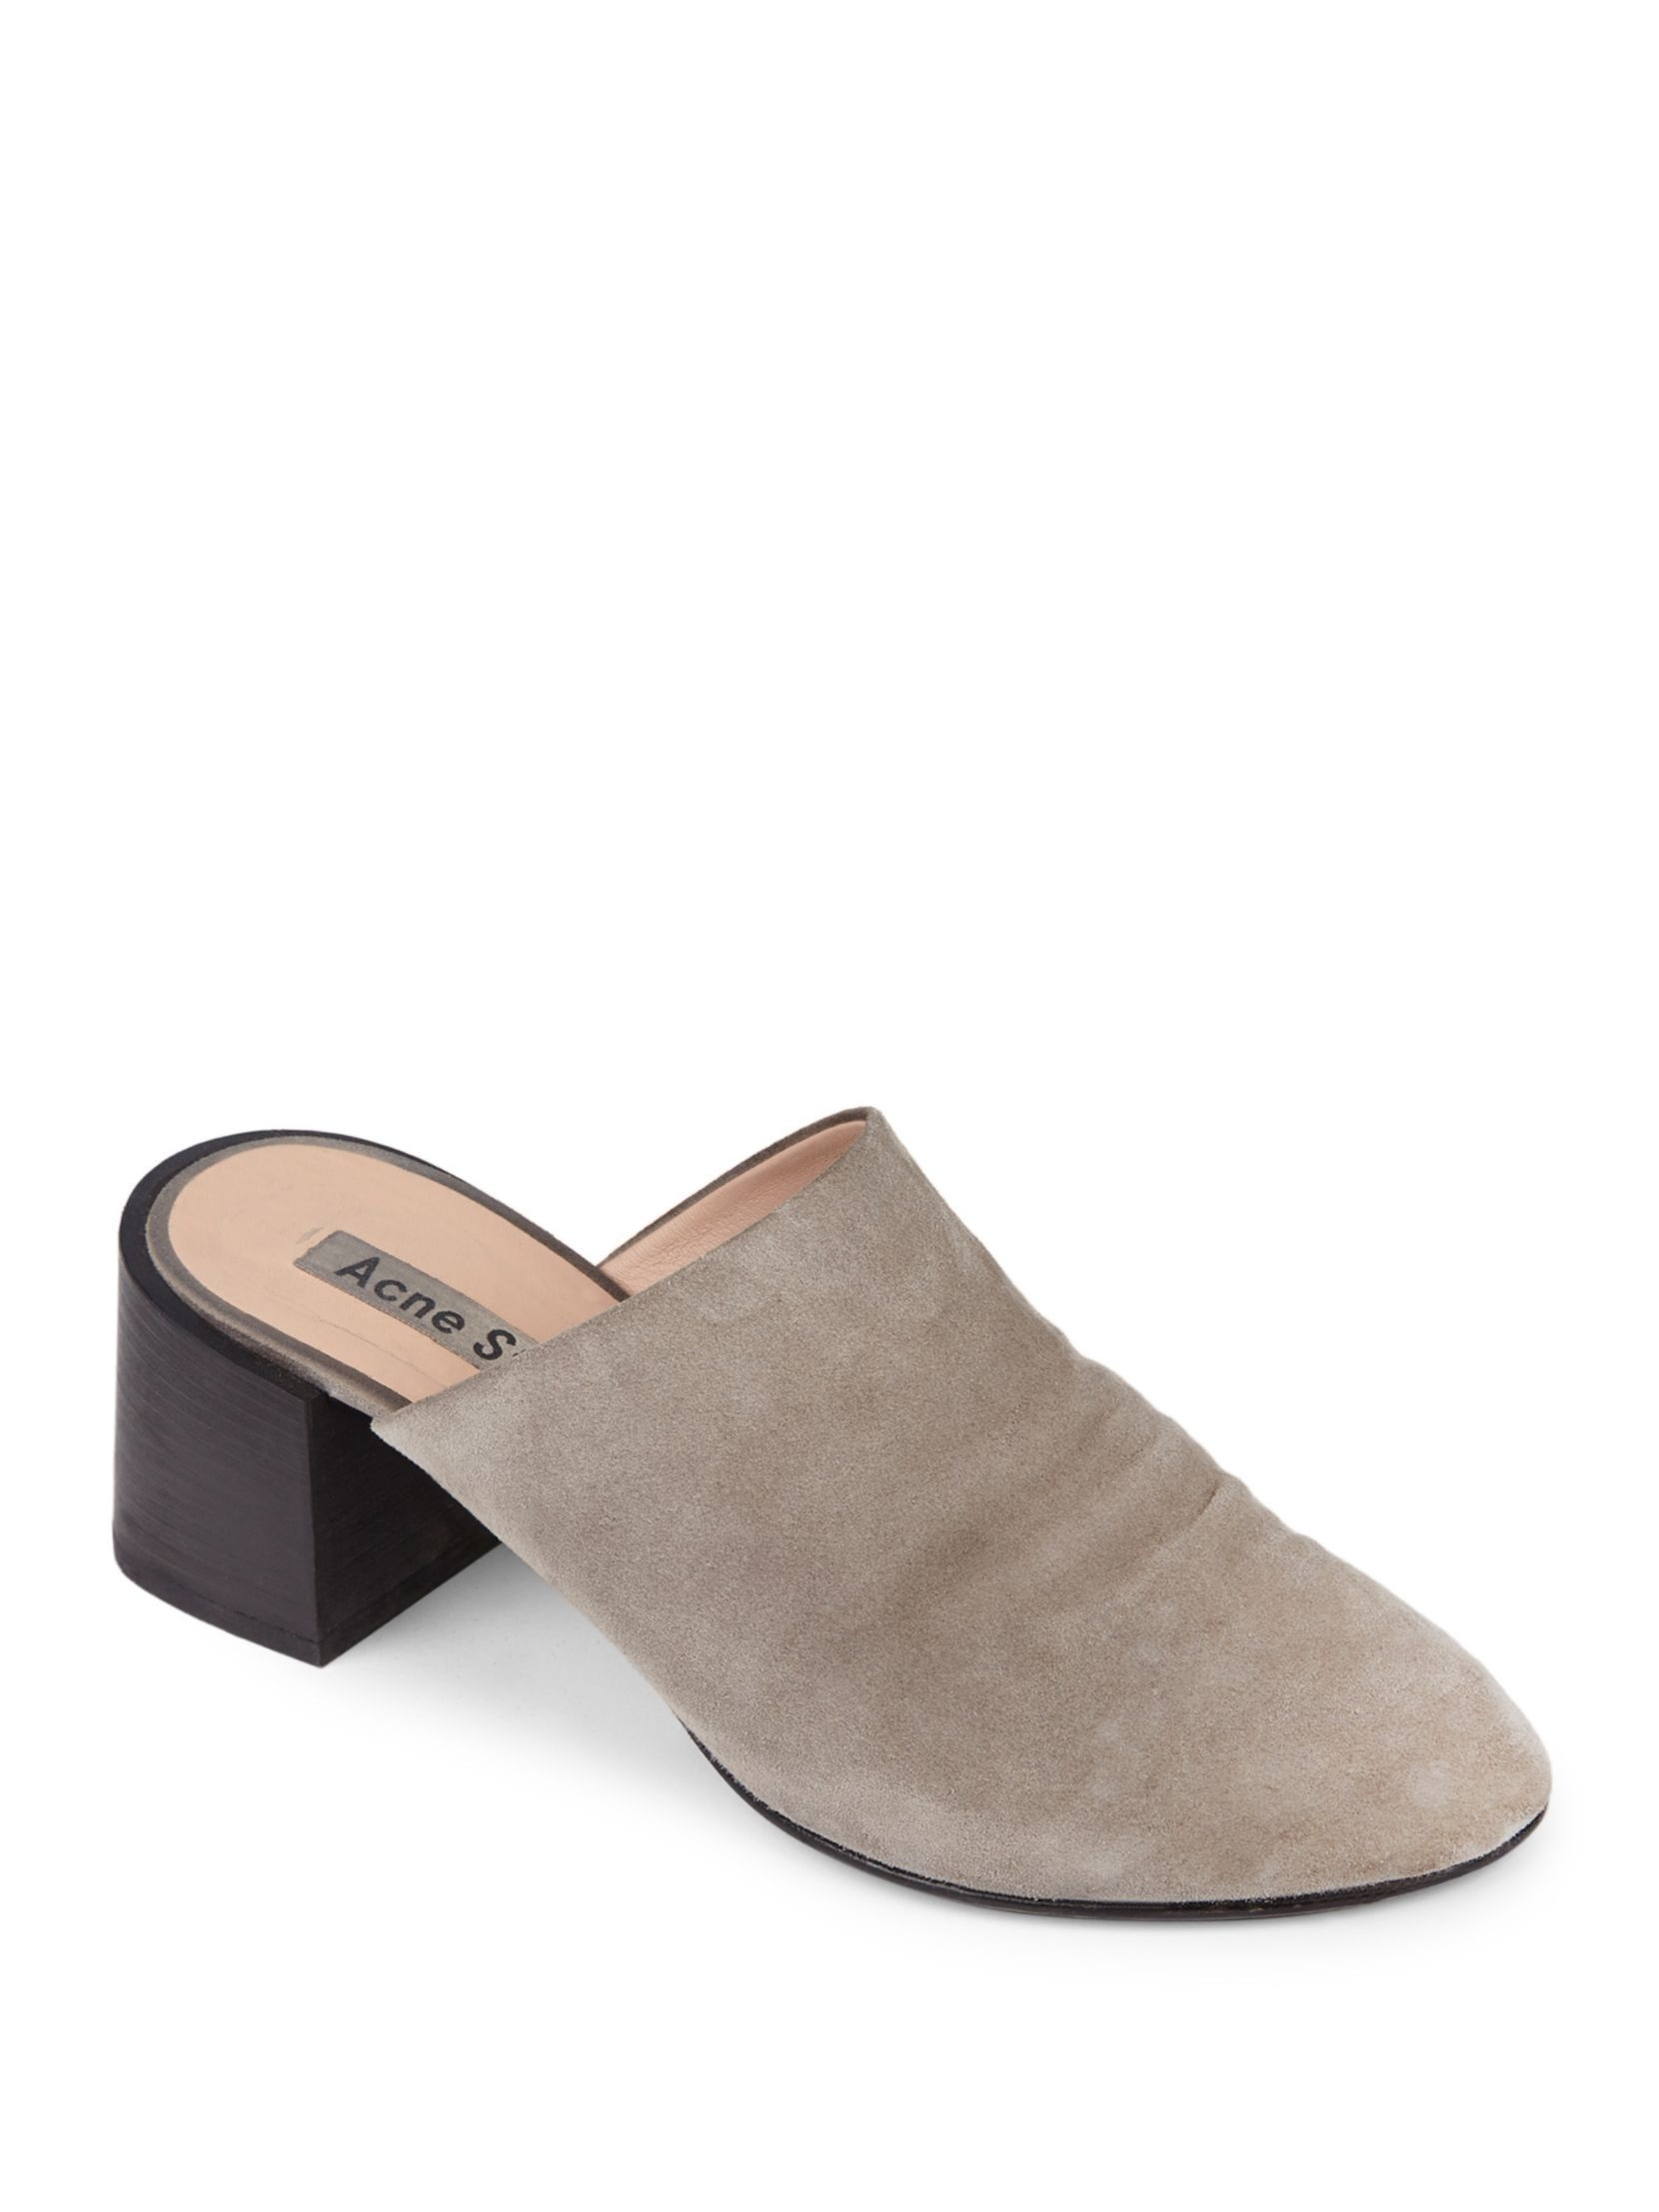 Acne Textured Suede Mules